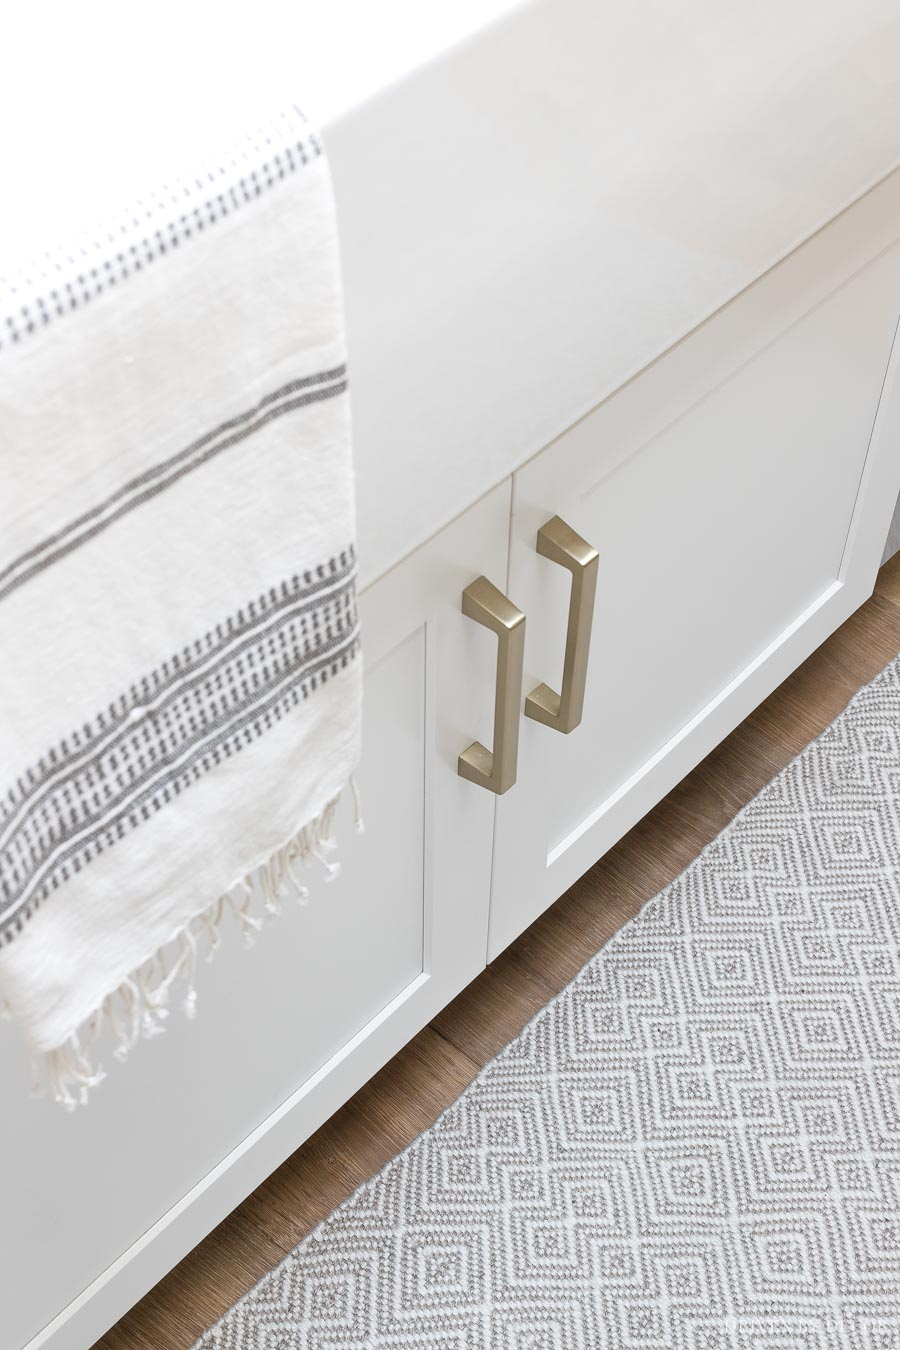 Gorgeous soft brass pulls - perfect for a kitchen update. Come in several sizes!